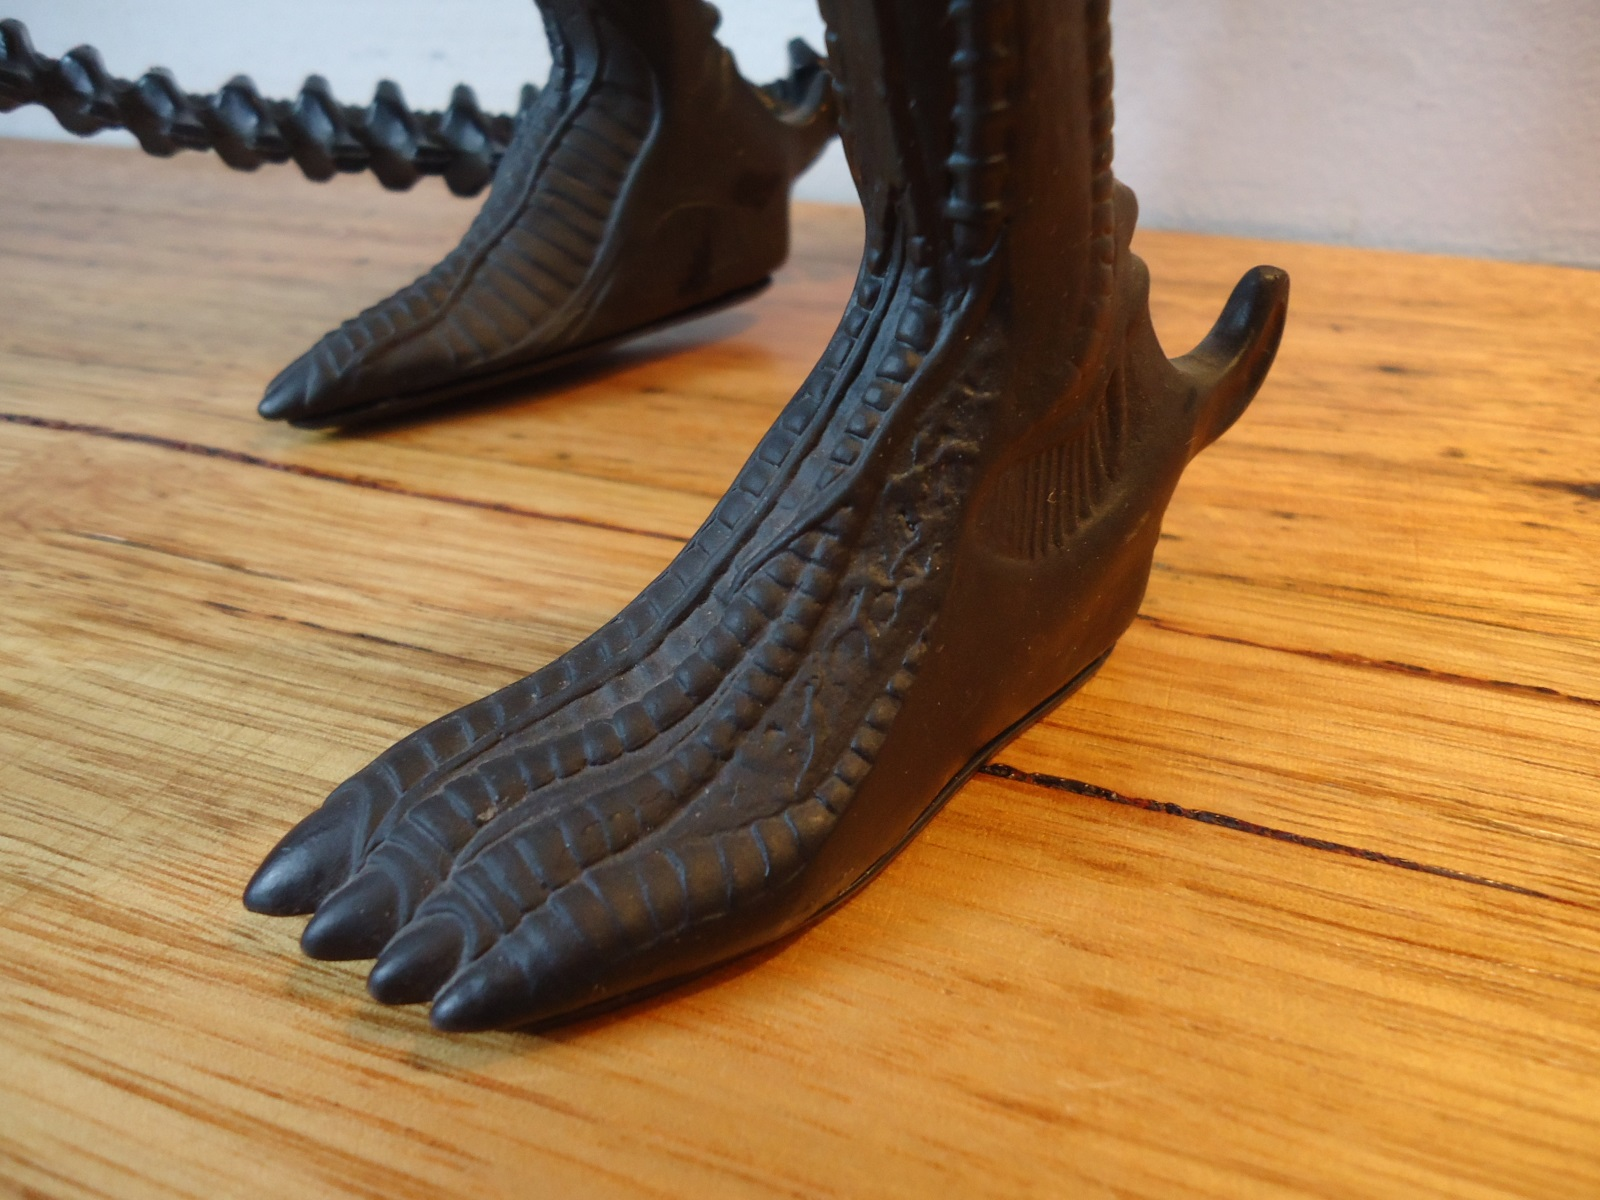 The right foot of the 1991 Halcyon ALIEN model kit.